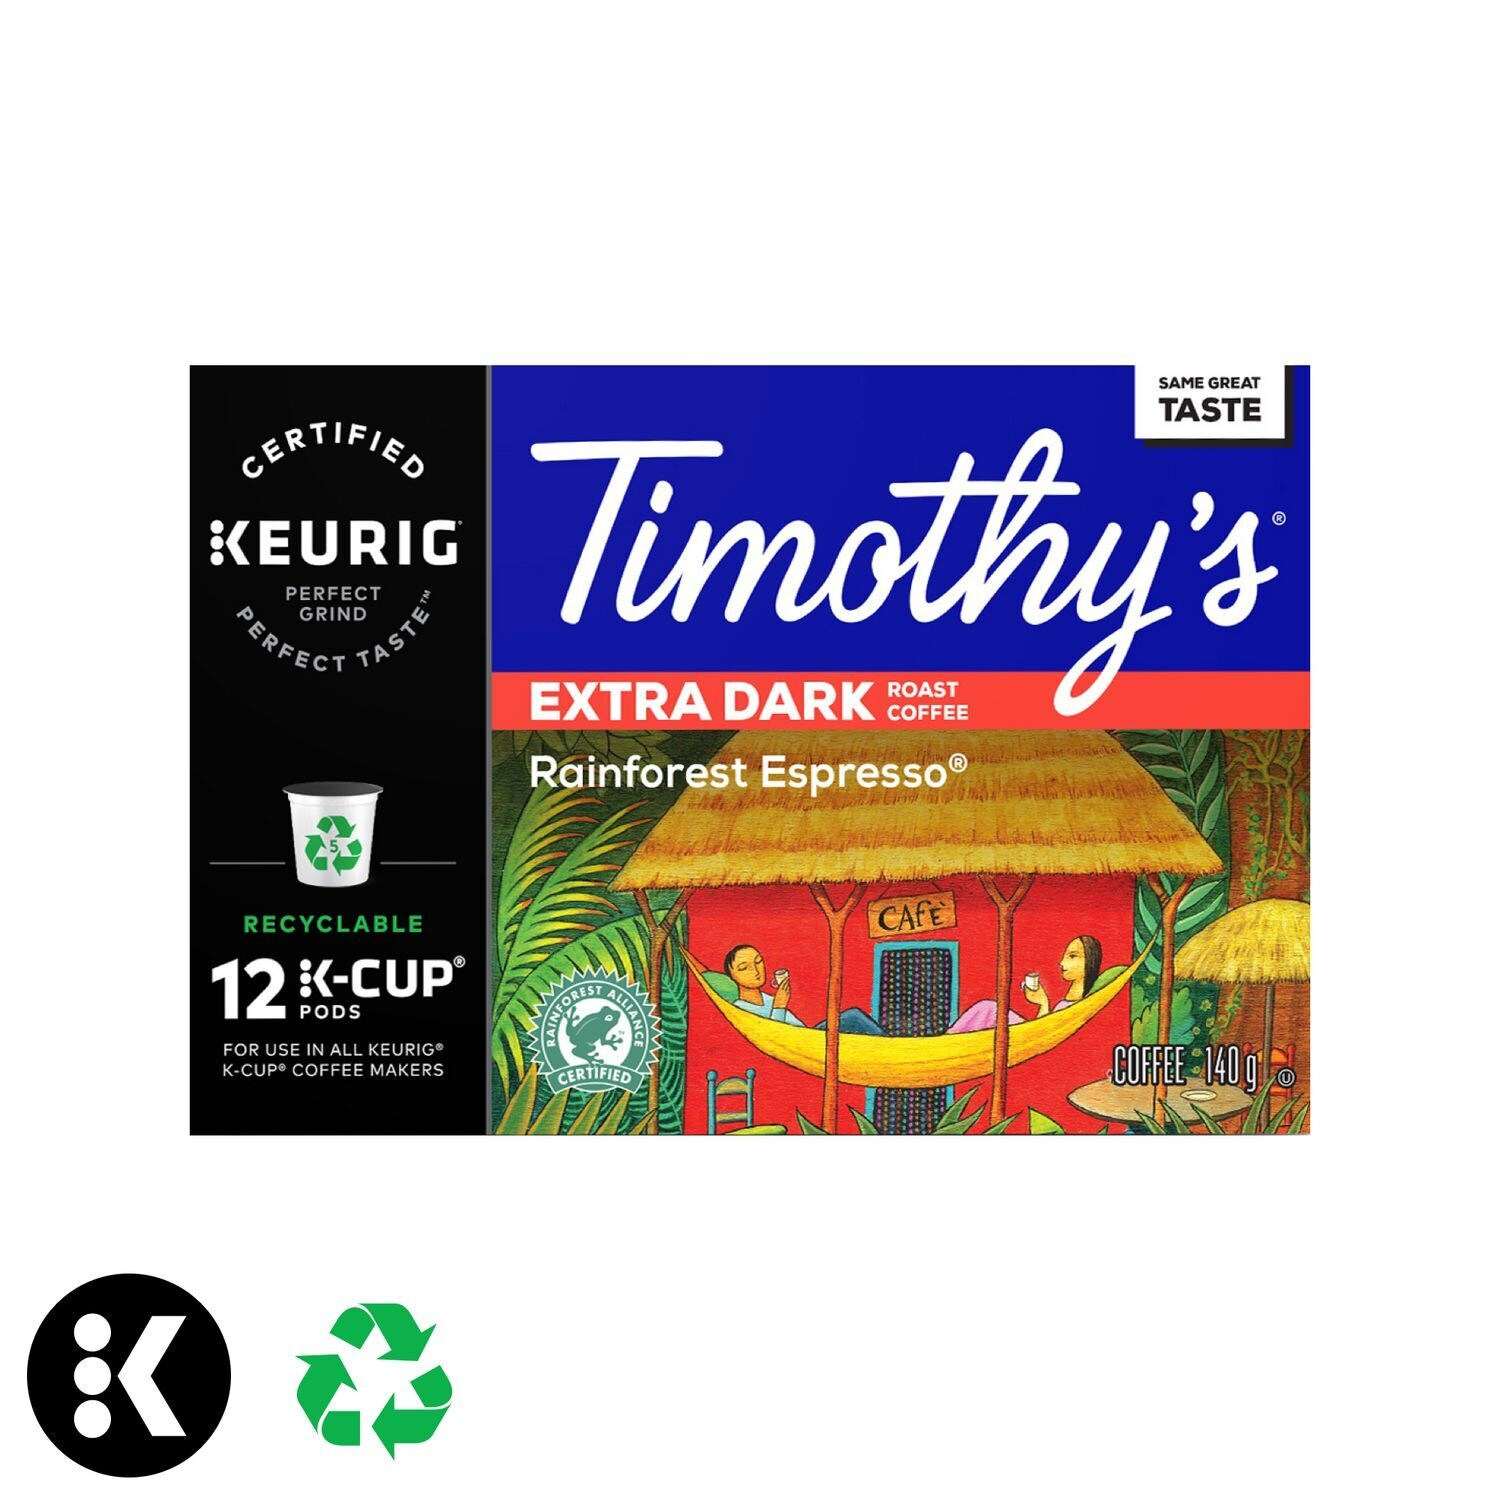 Keurig® Timothy's® Rainforest Espresso® Extra Dark Roast Coffee Recyclable K-Cup® PODS (300 count)